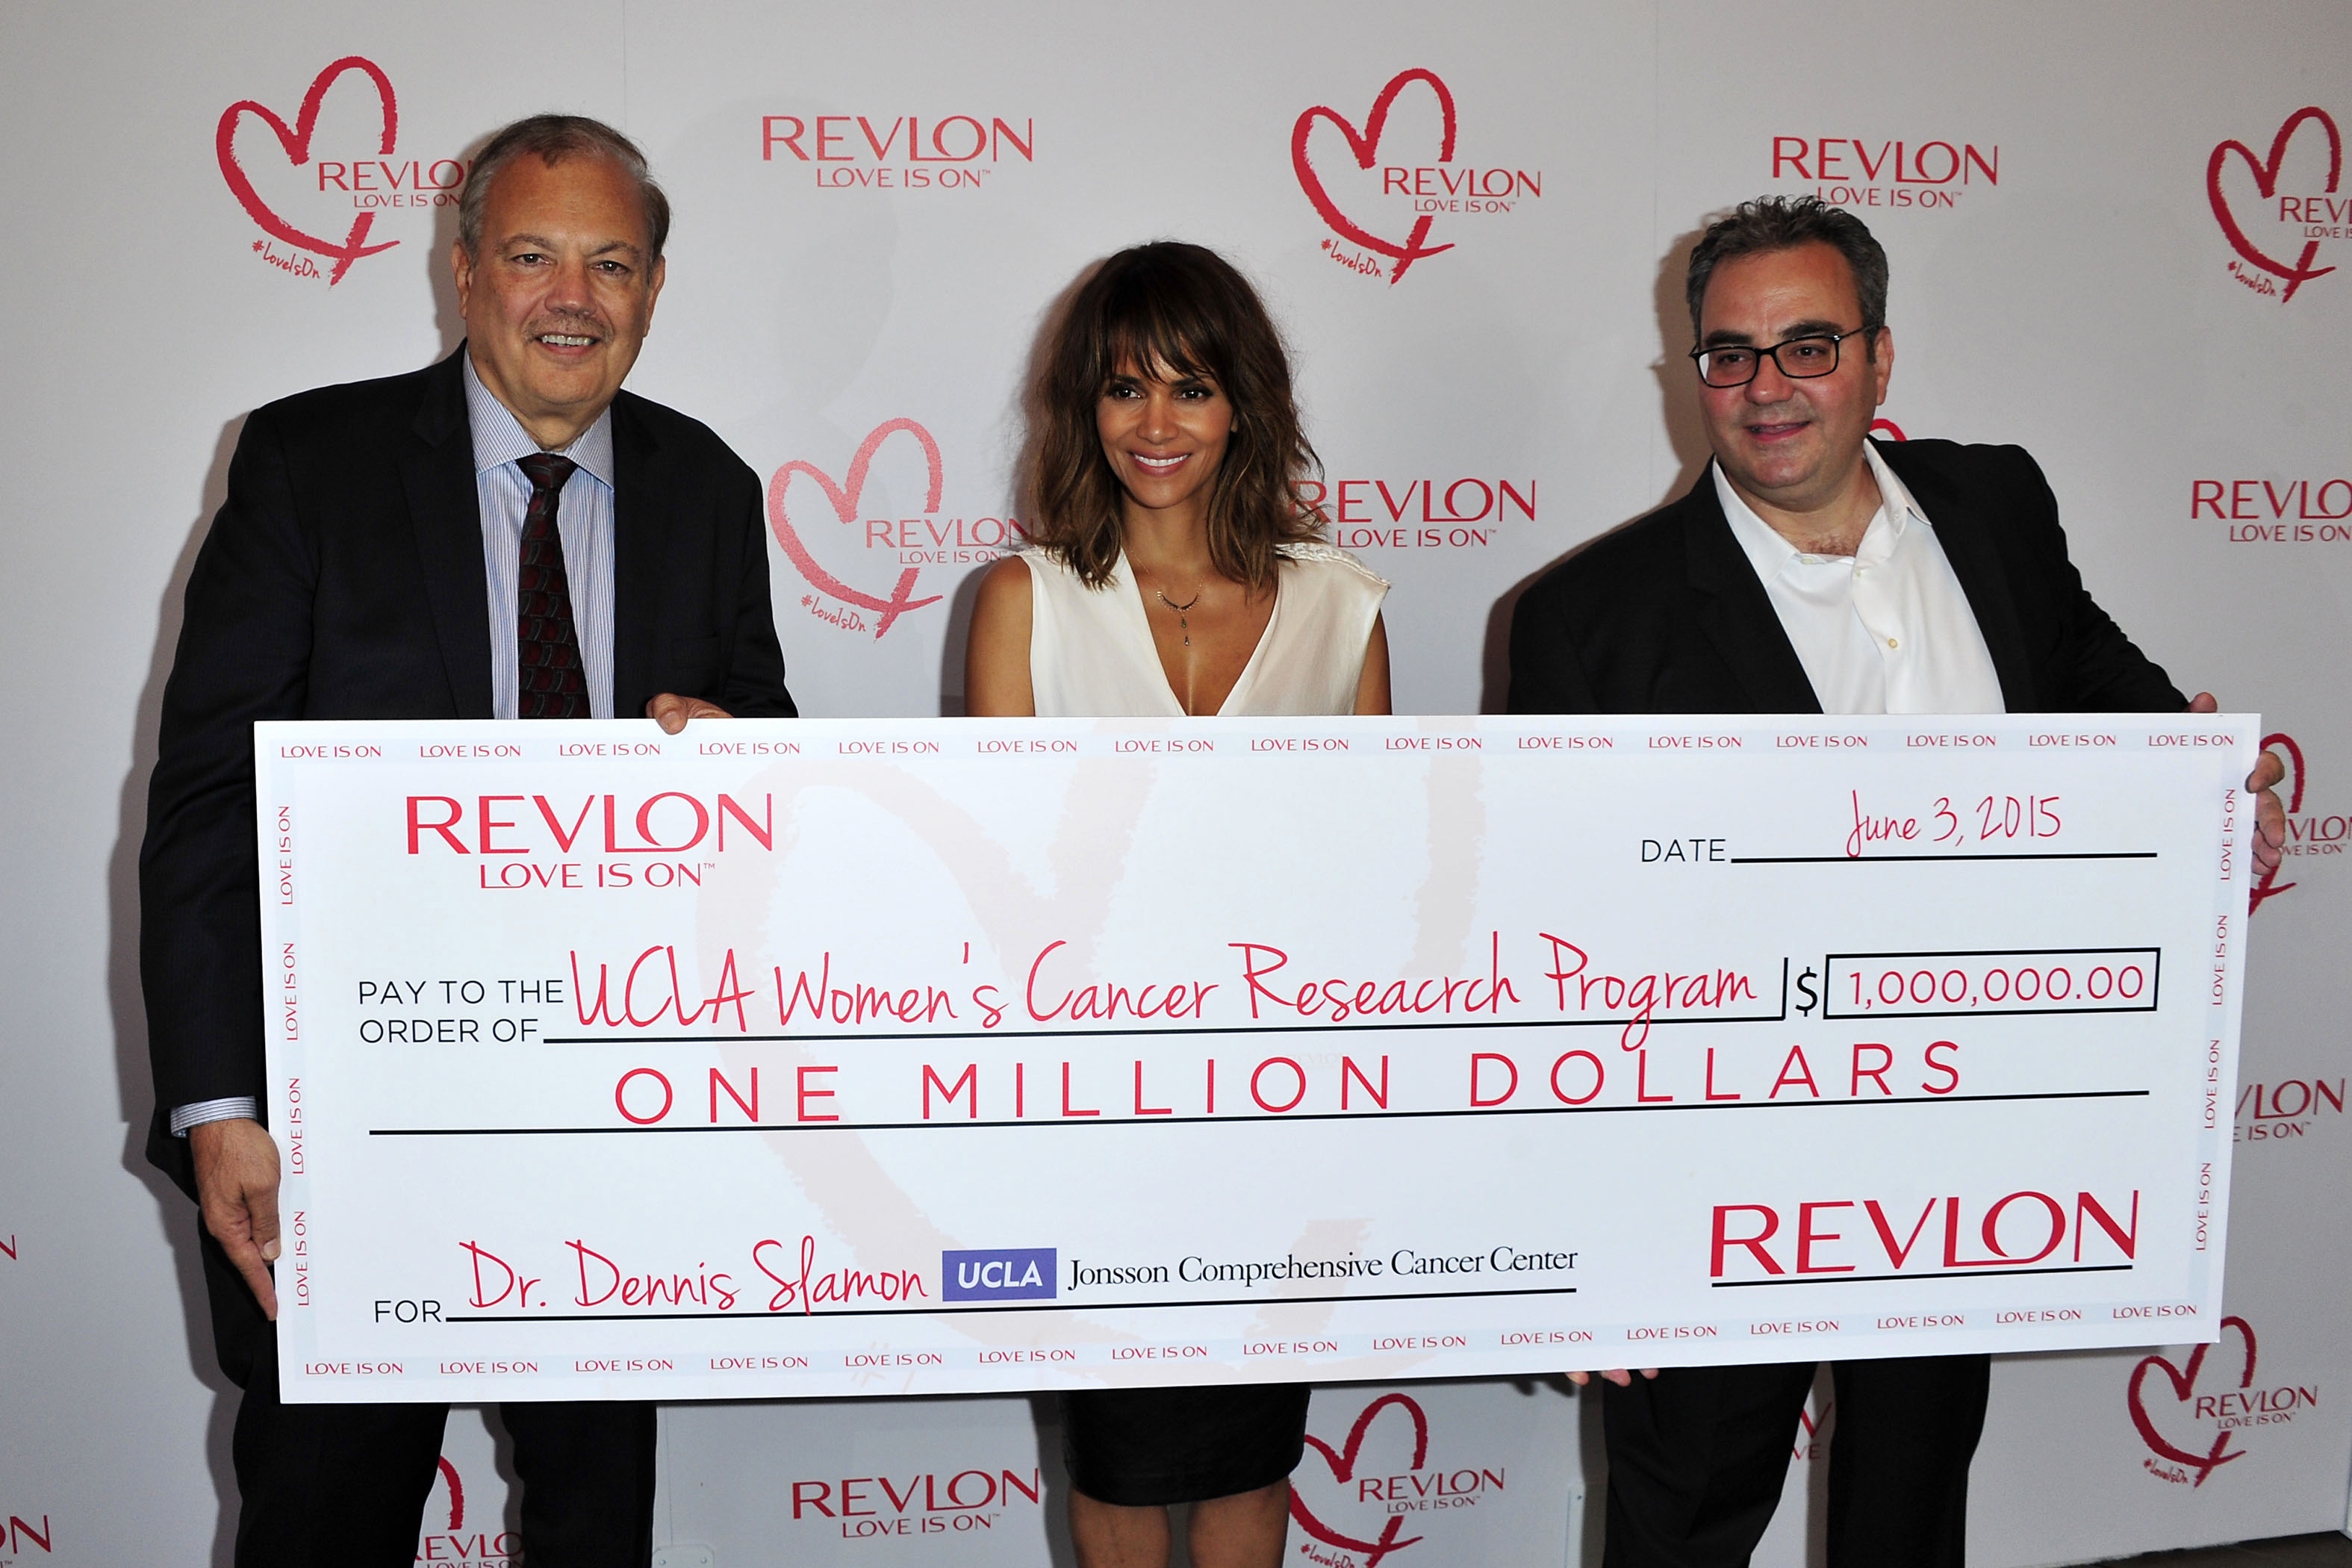 ADDING MULTIMEDIA Revlon Charts New Course for Philanthropy